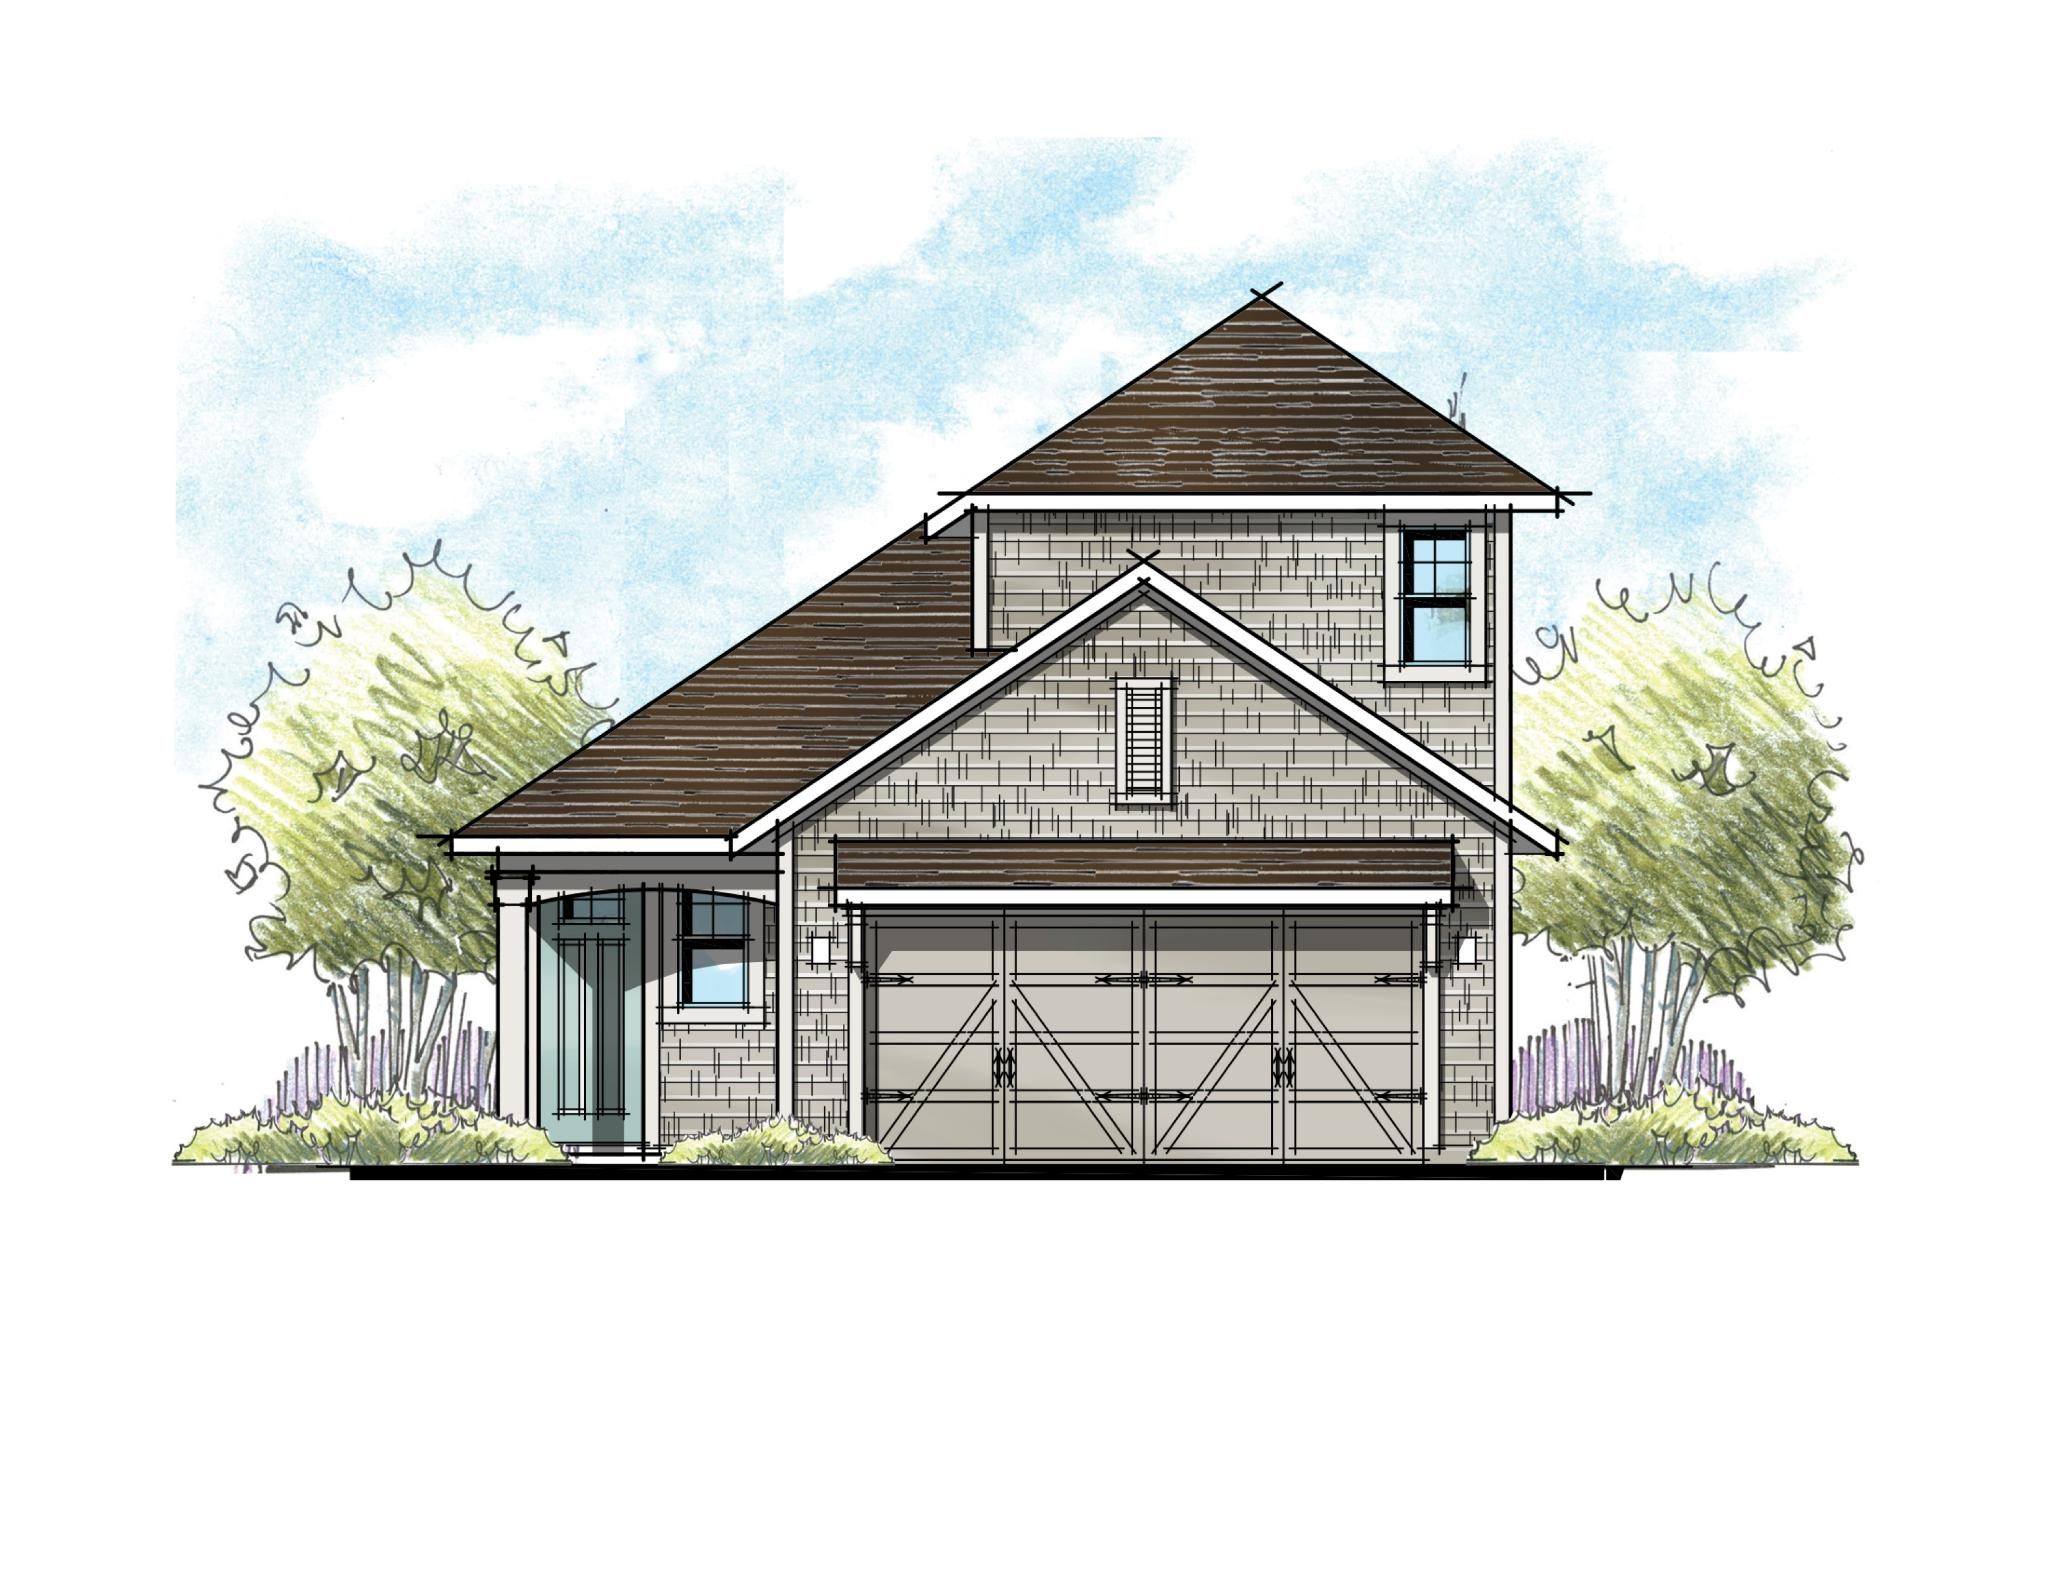 The Jackson Shingle Elevation w/ Bonus Room 6